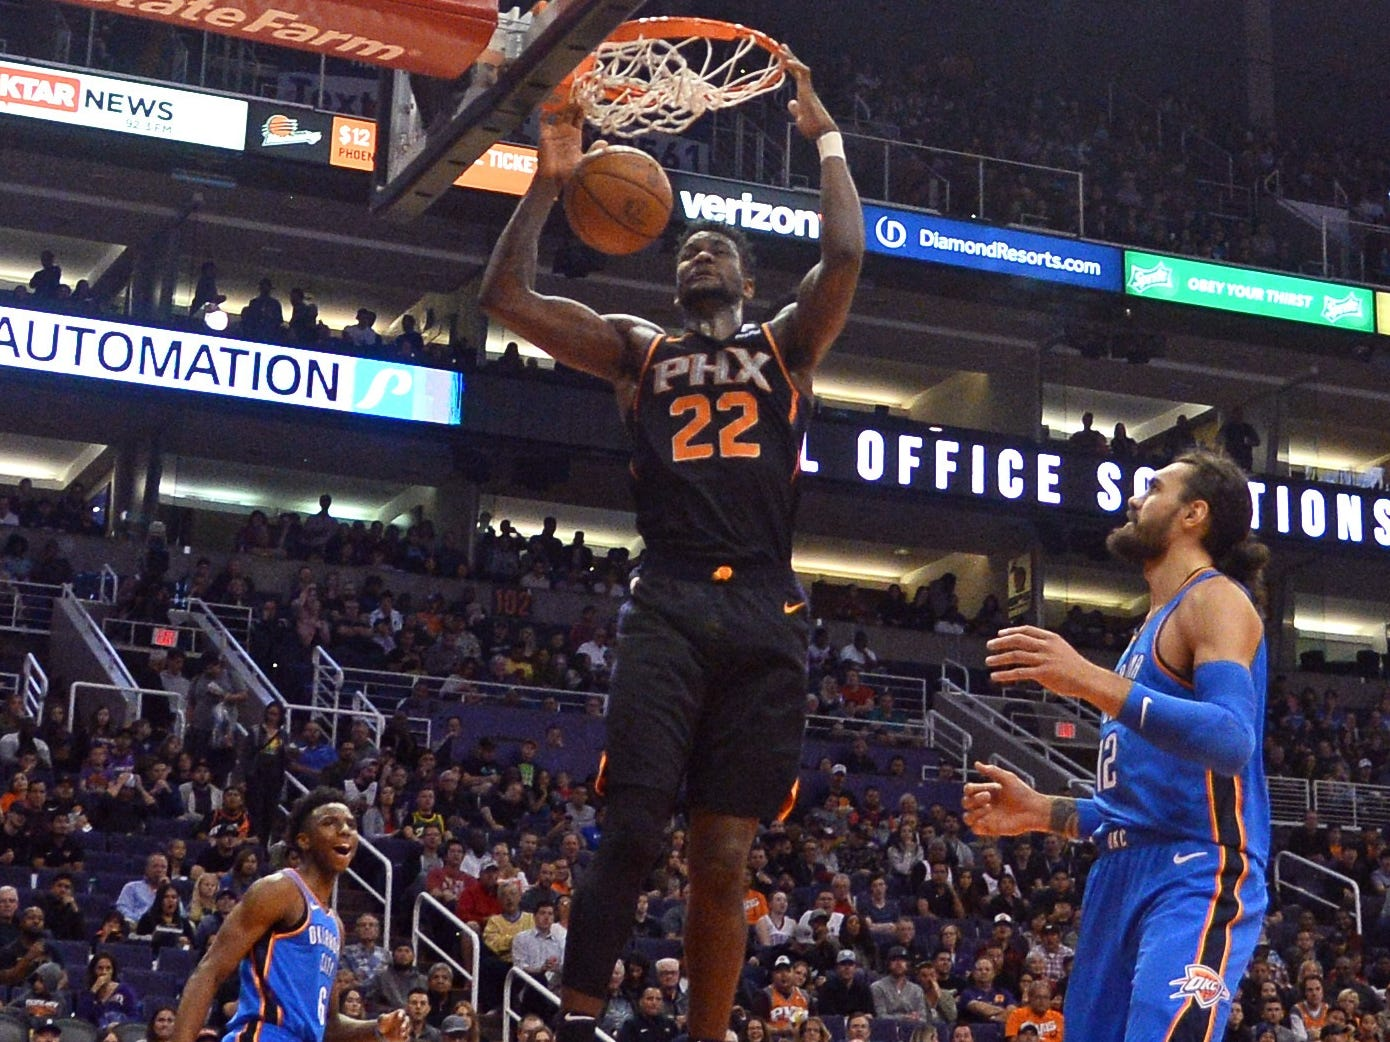 Nov. 17: Suns center Deandre Ayton throws down a two-handed finish during the first half against the Thunder.